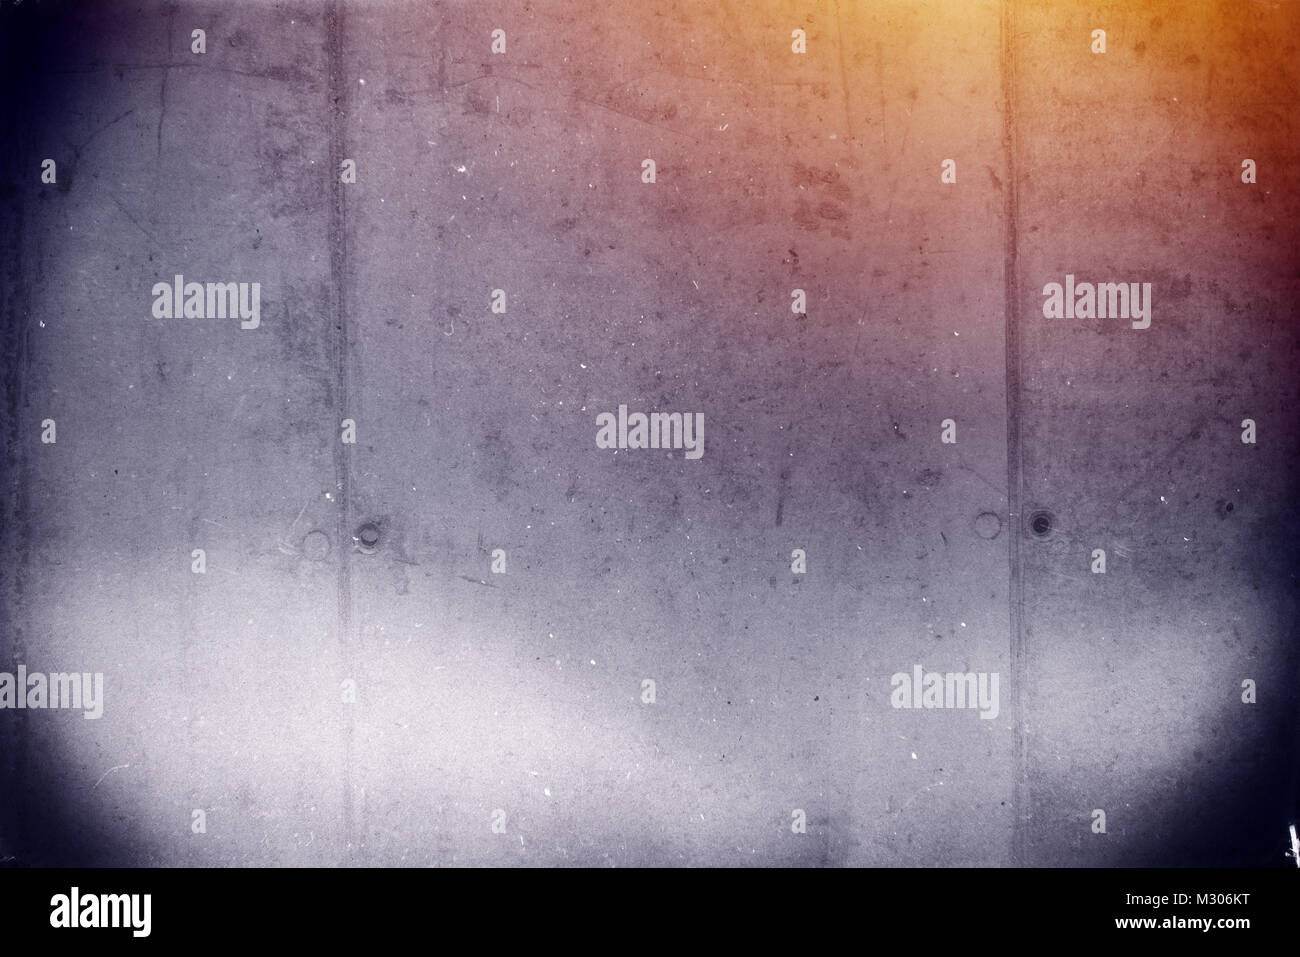 Grunge Camera Effect : Abstract grunge scratched texture with grain and light leak effect